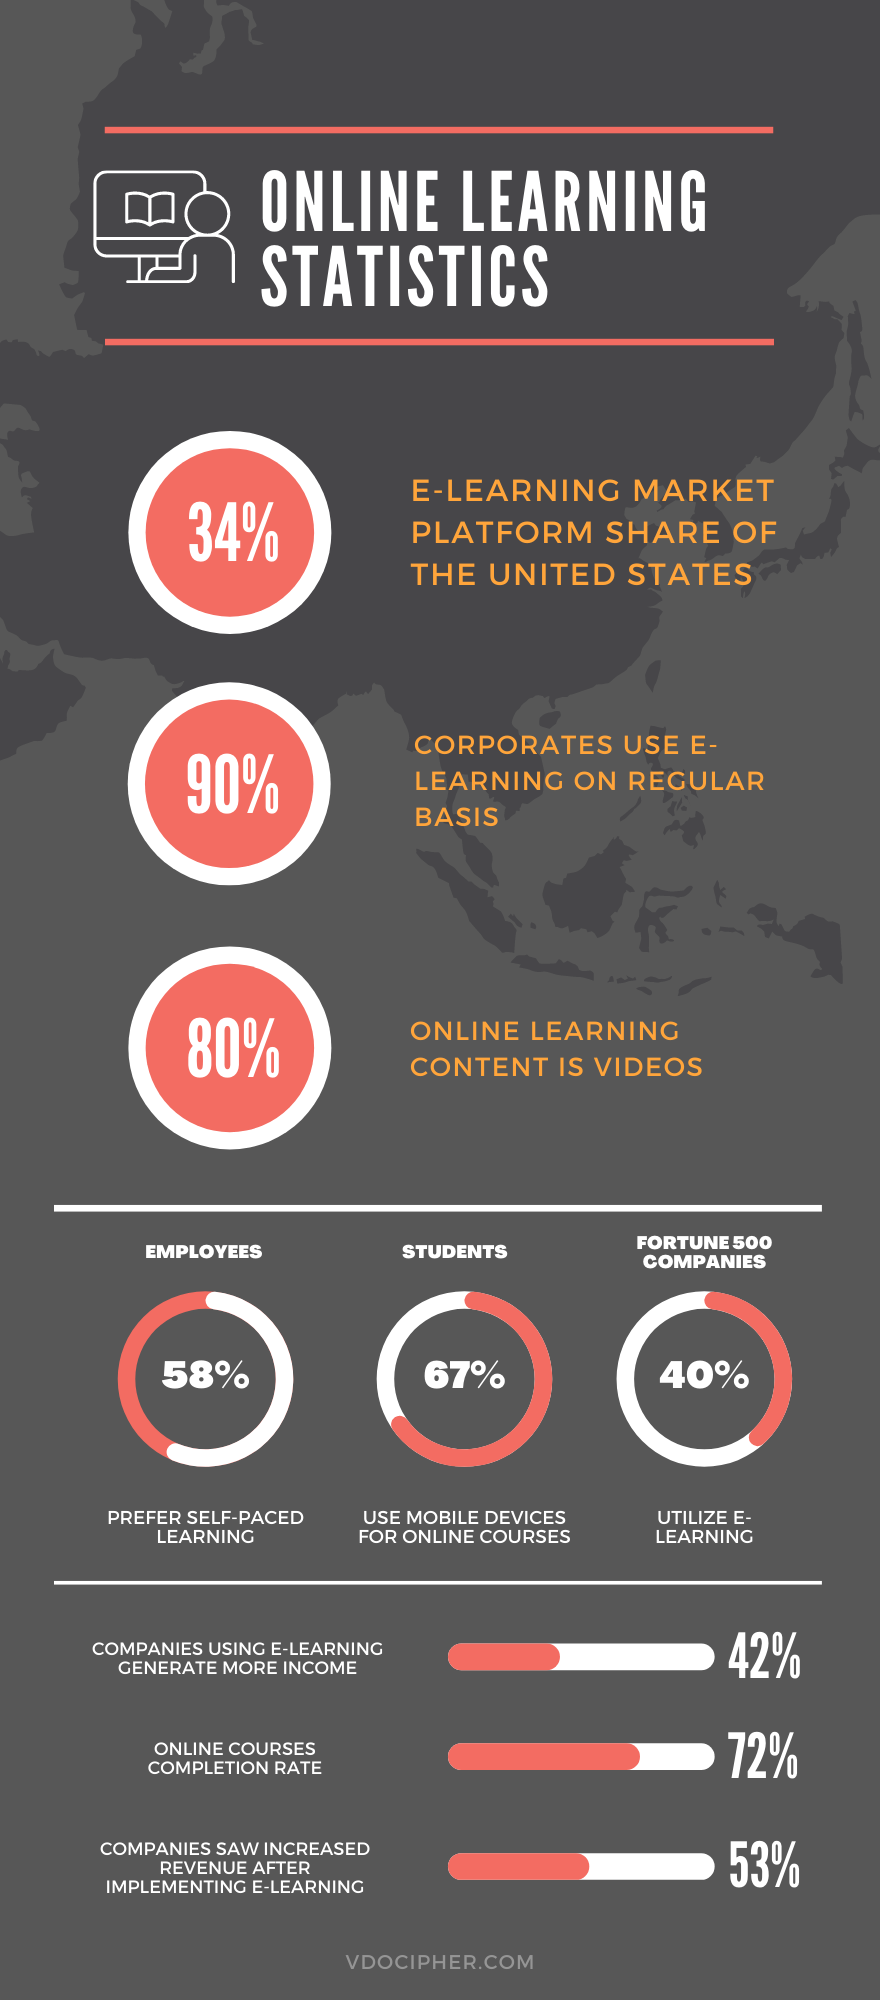 E-Learning statistics and online learning stats infographic